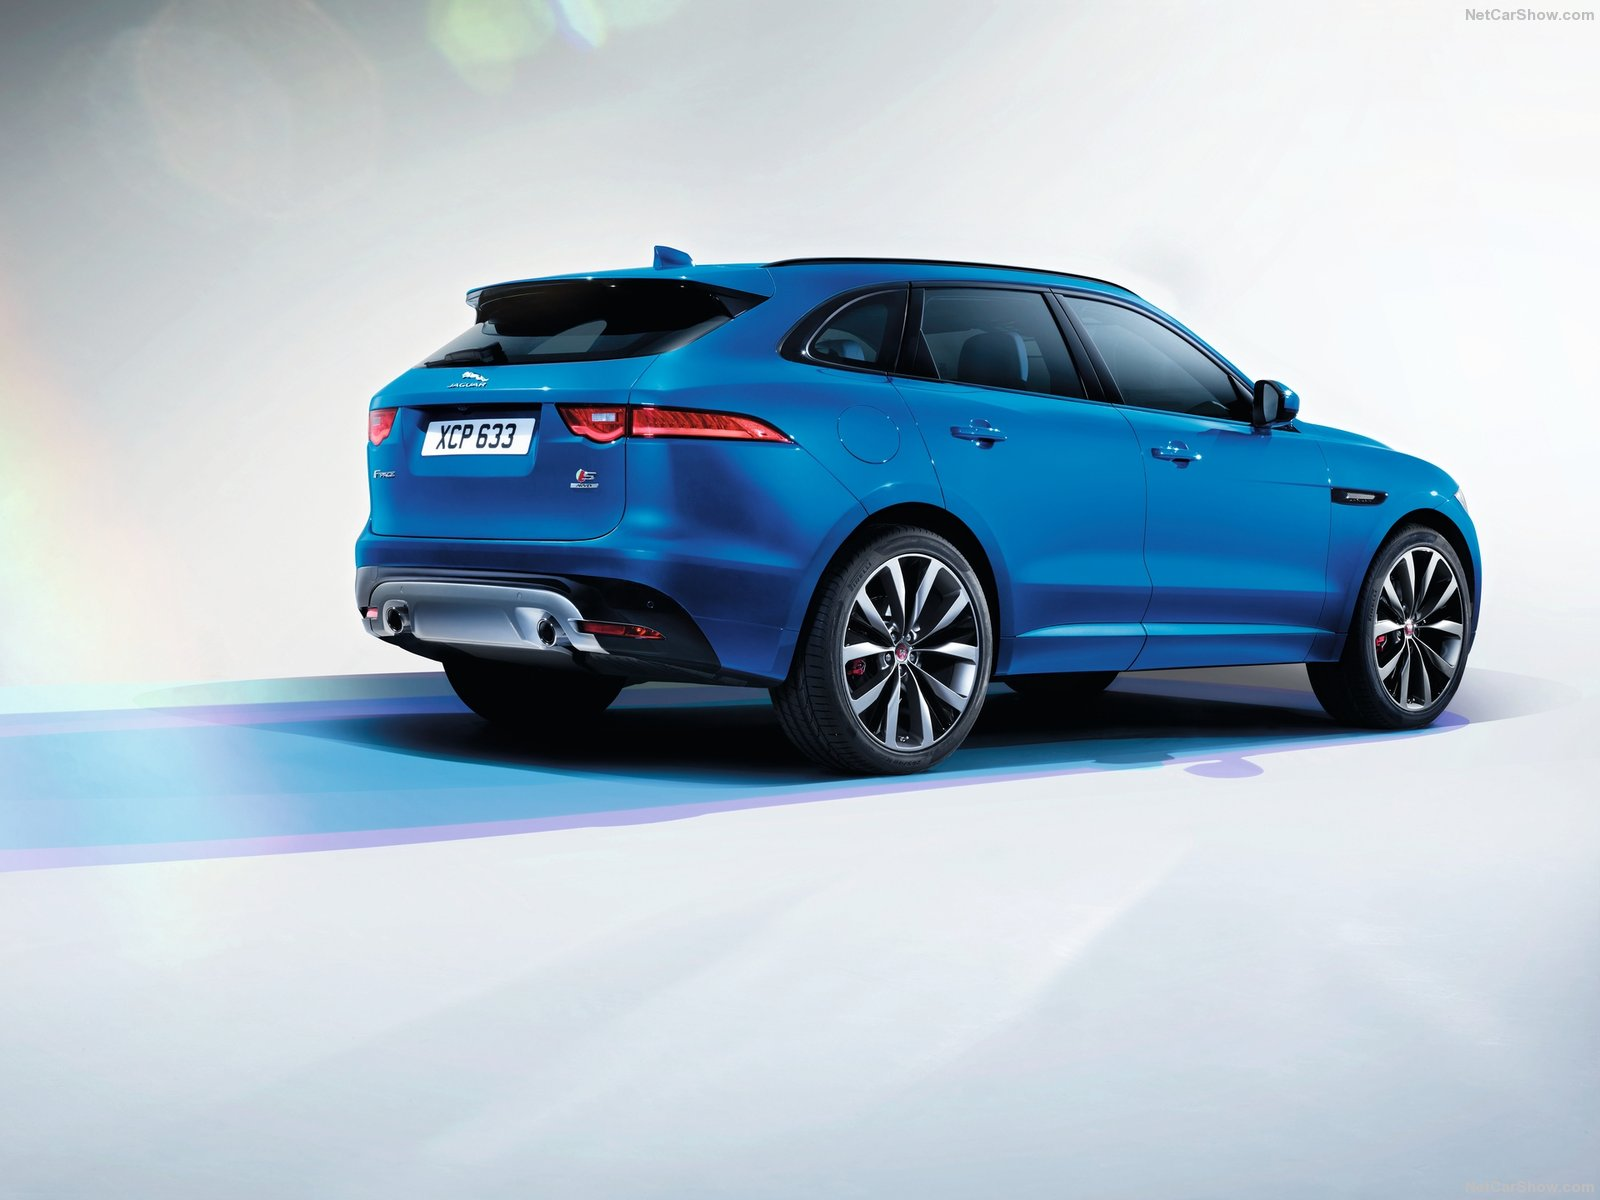 jaguar f pace 2016 wallpapers high resolution and quality download. Black Bedroom Furniture Sets. Home Design Ideas